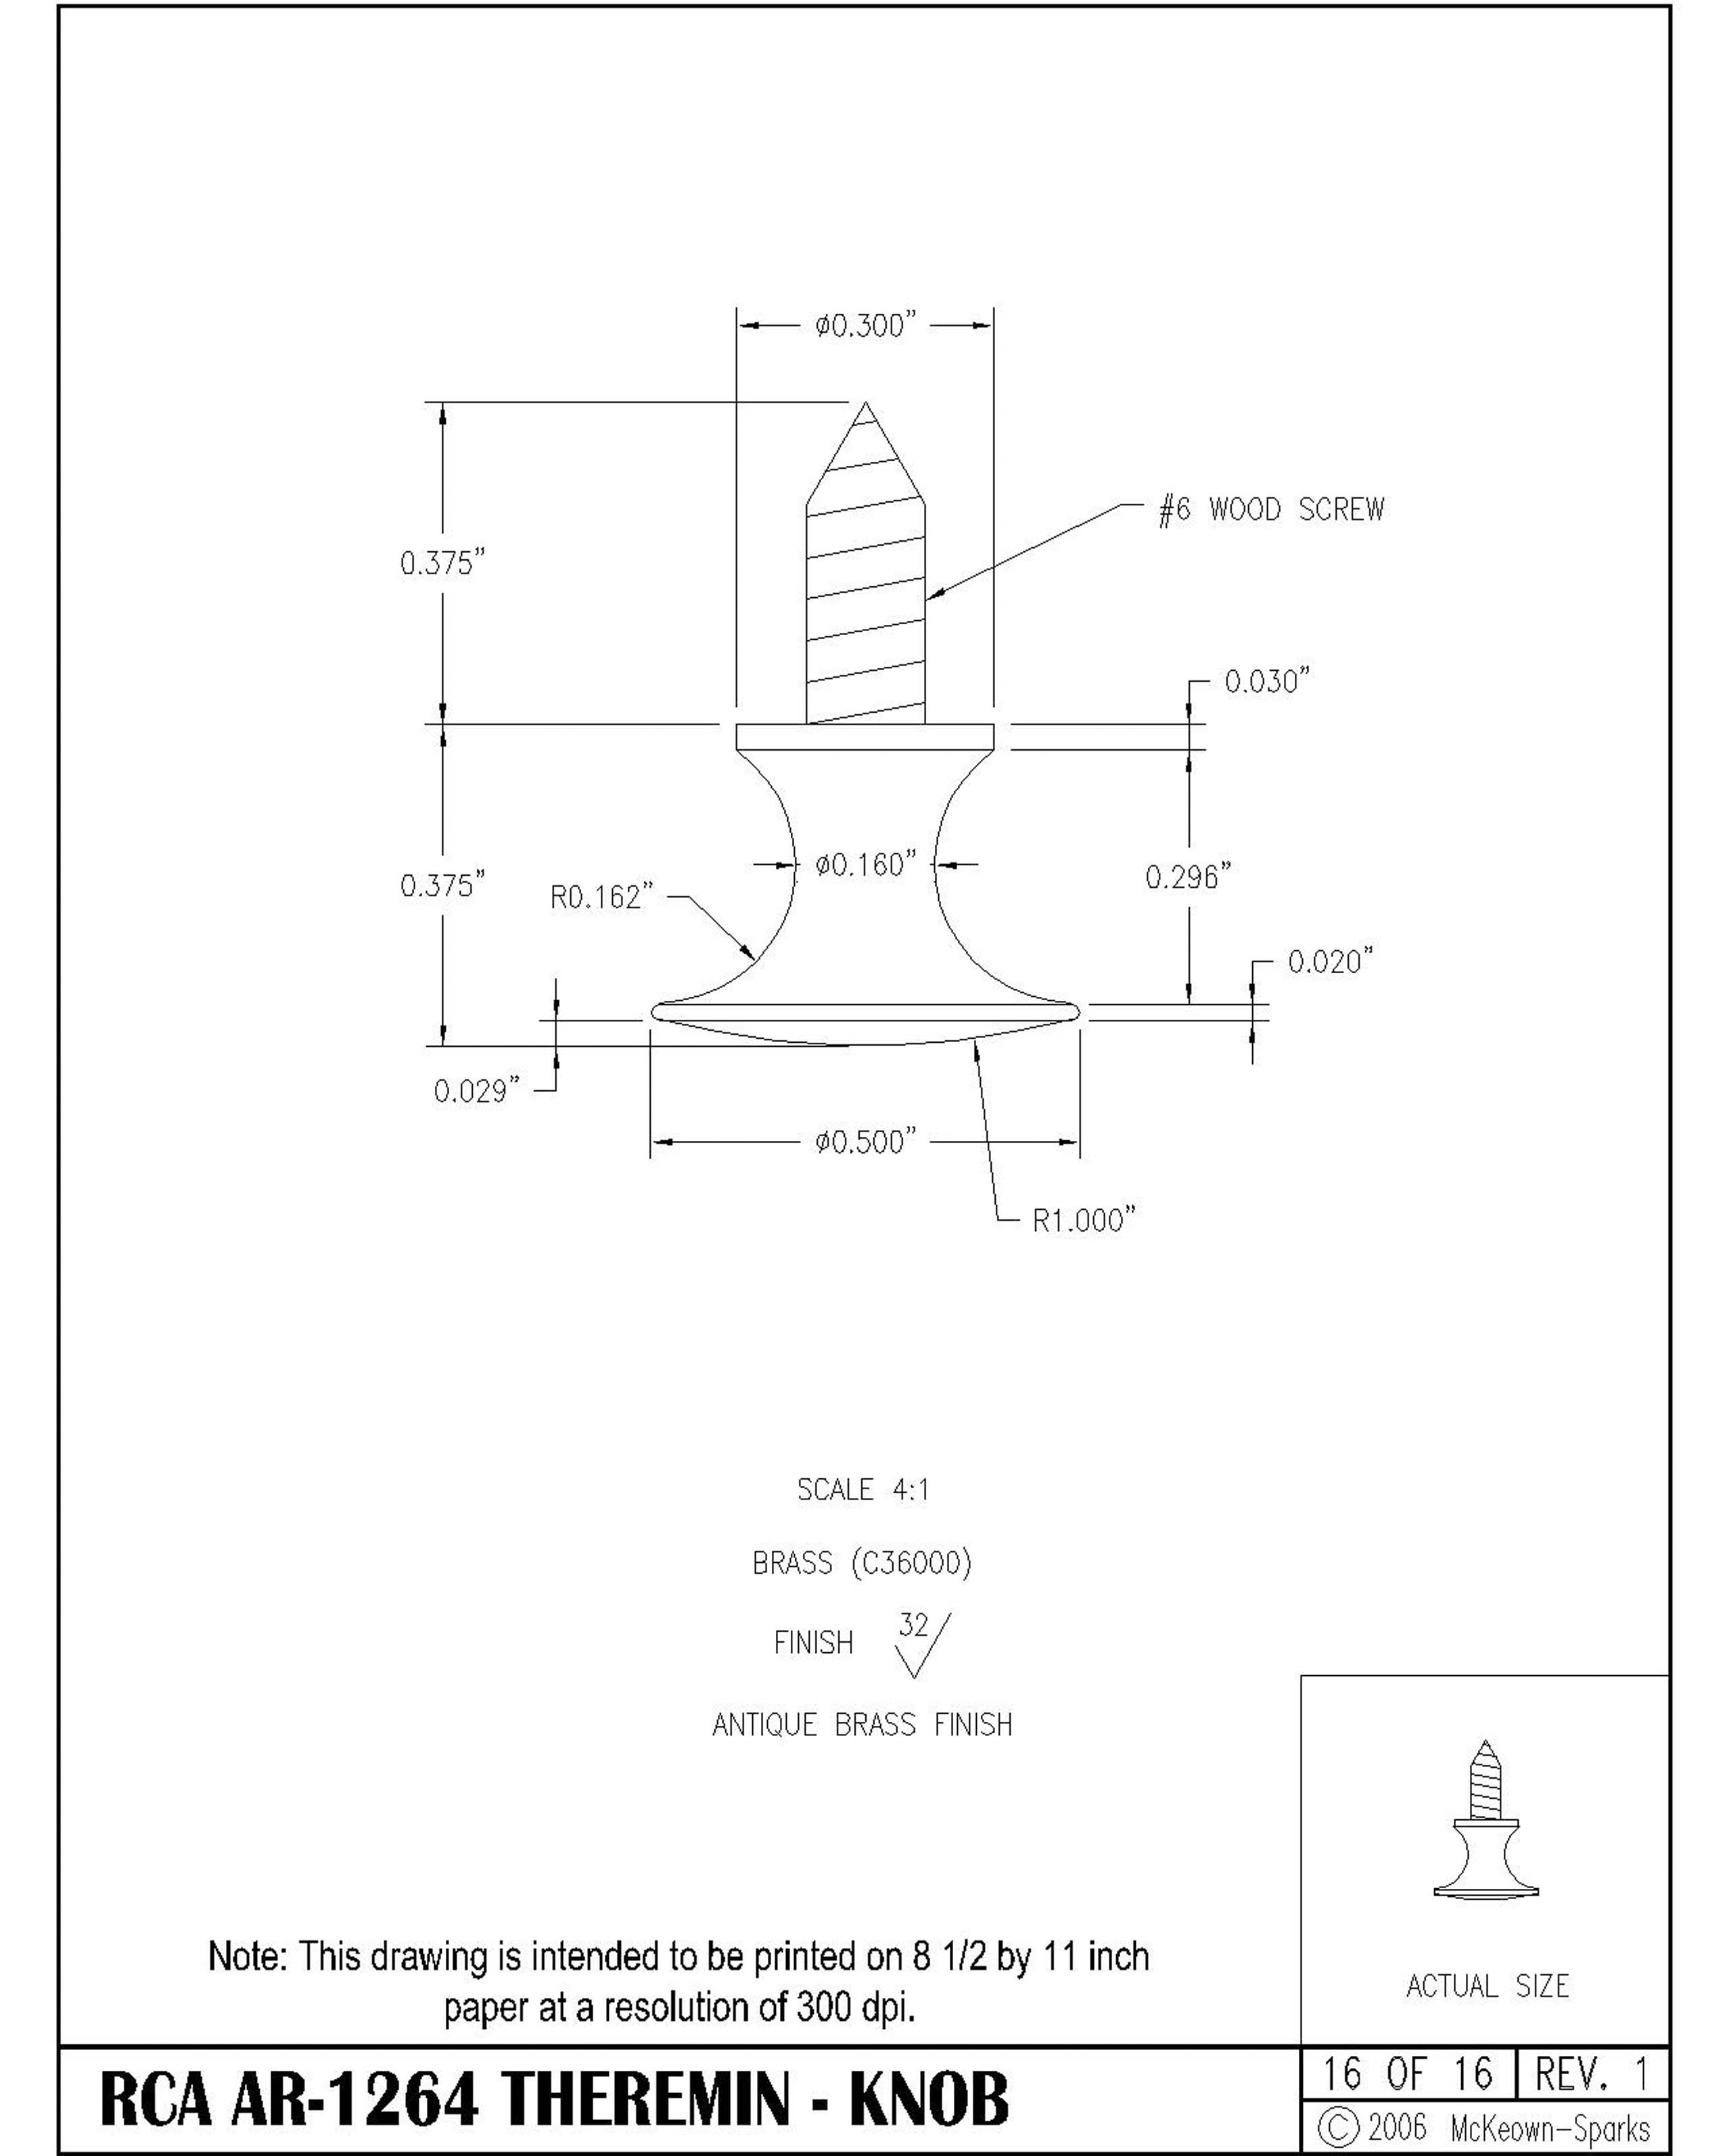 theremin world rca theremin ponent values and cabinet dimensions Nut Brown loop volume antenna drawing 16 knob